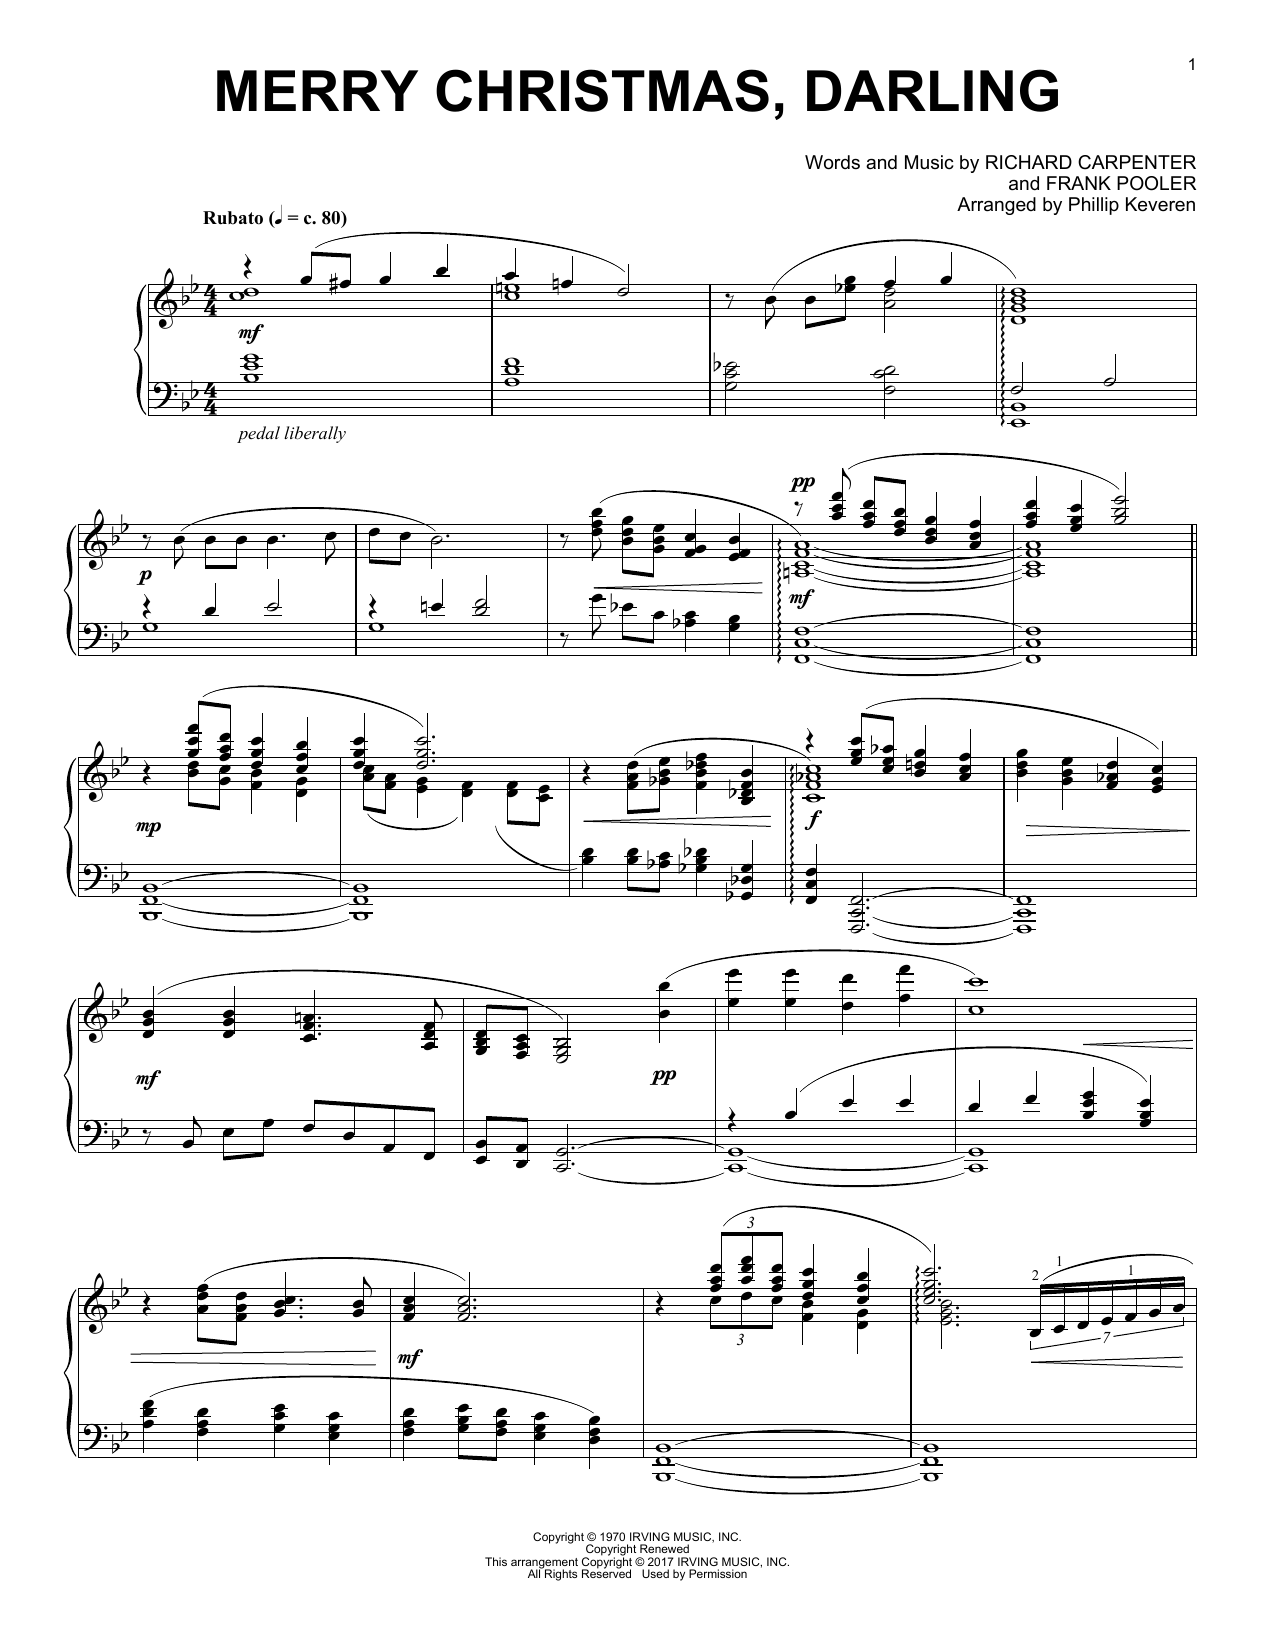 Download Phillip Keveren 'Merry Christmas, Darling' Digital Sheet Music Notes & Chords and start playing in minutes